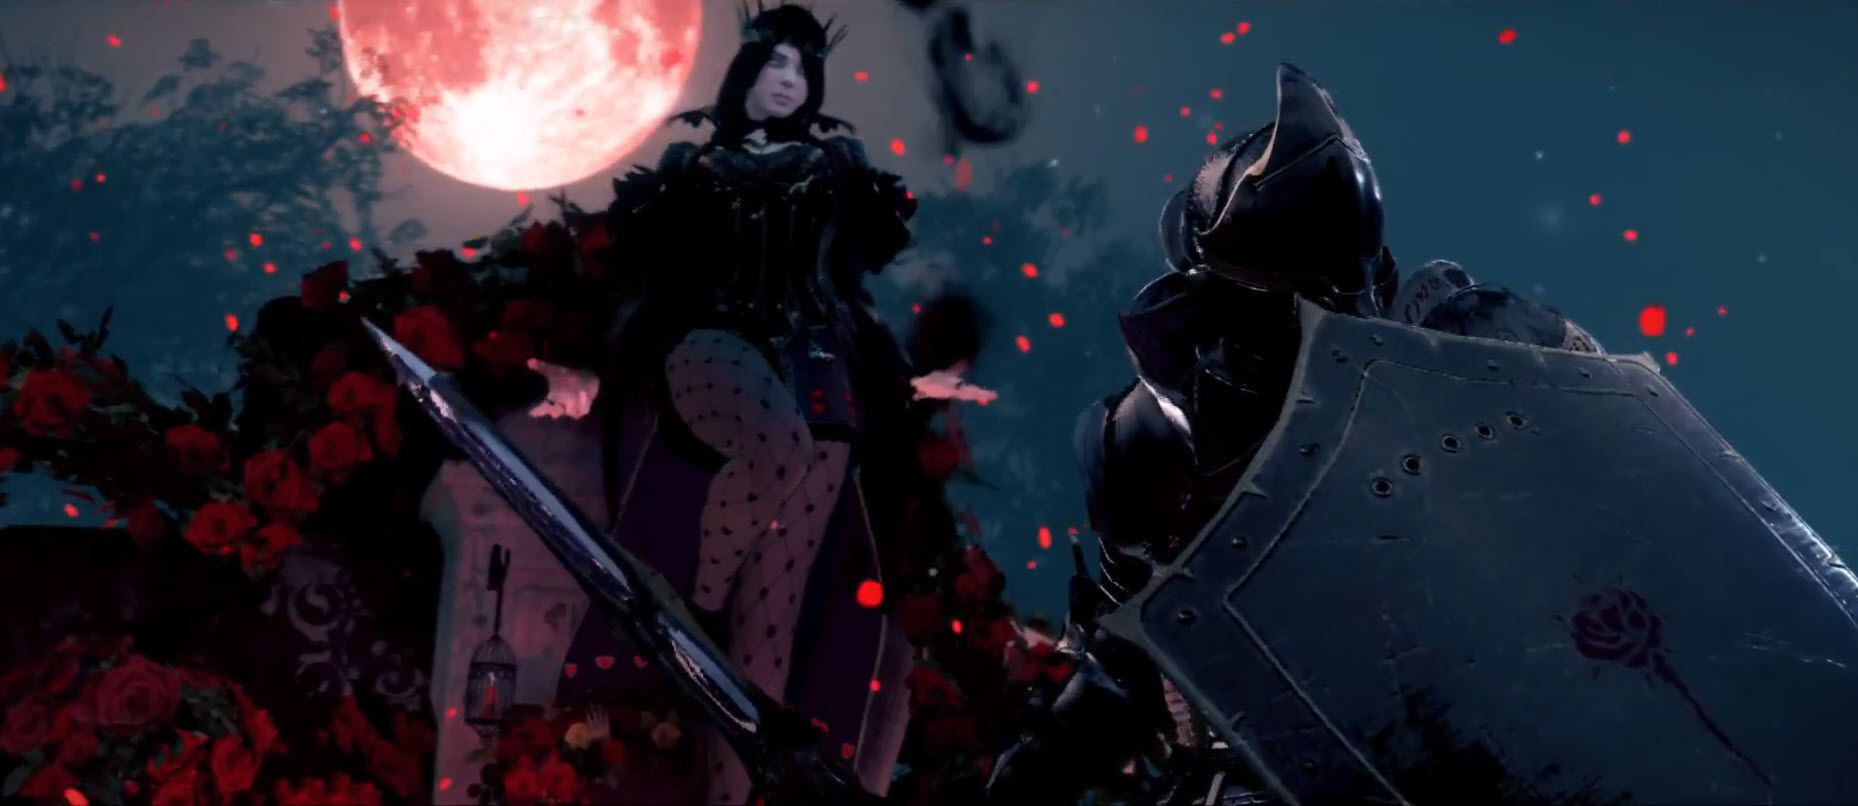 Black Desert Halloween Update Brings Tons Of Tricks And Treats To Players Allowing Them To Celebrate The Spookiest Time Of The Year